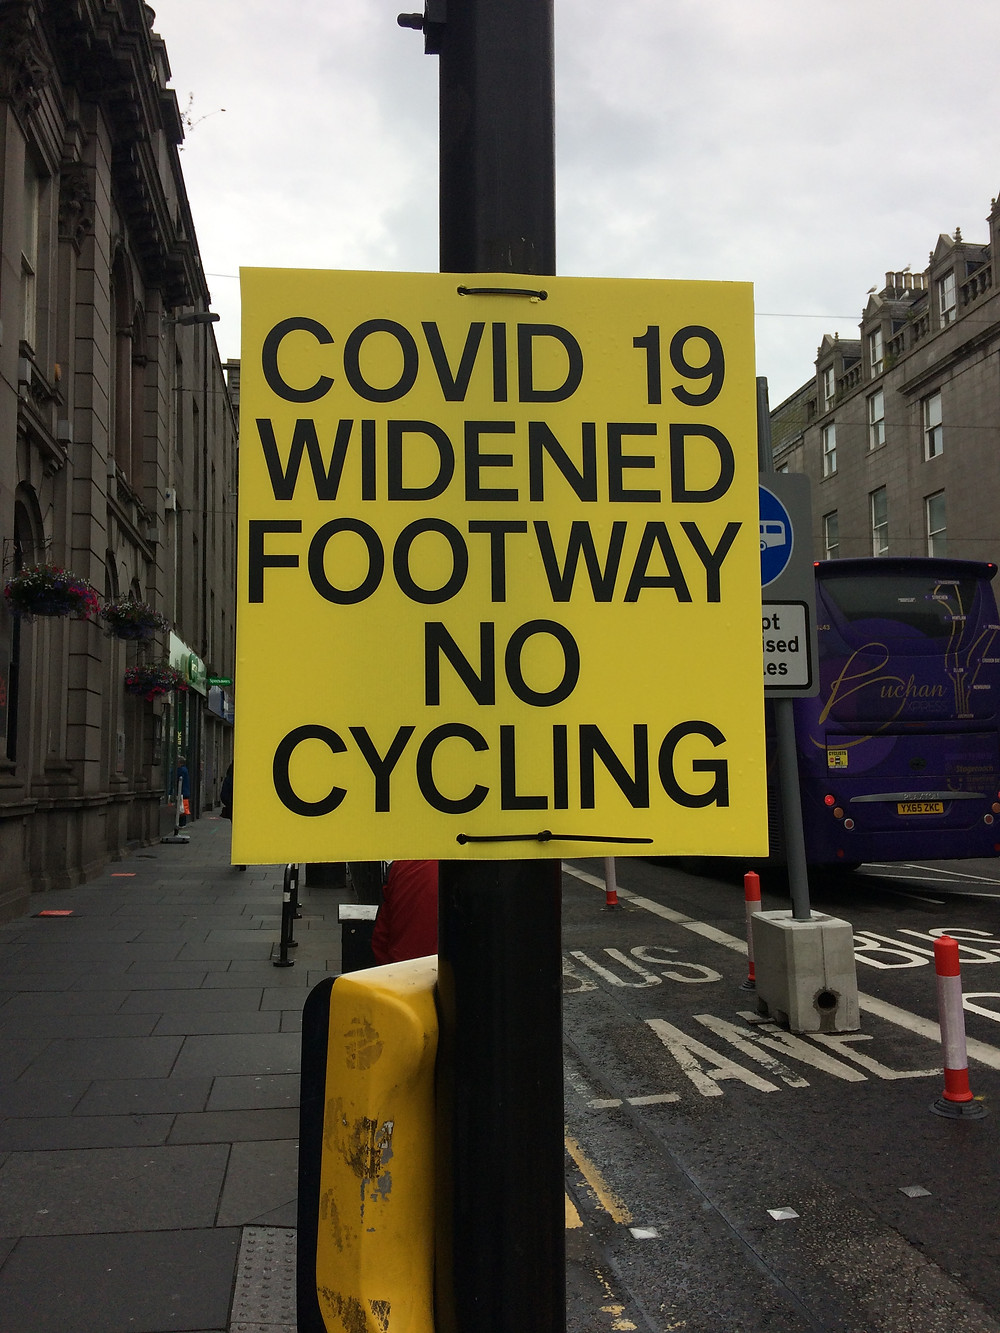 Note to Aberdeen cyclists - no cycling in pavement extensions !